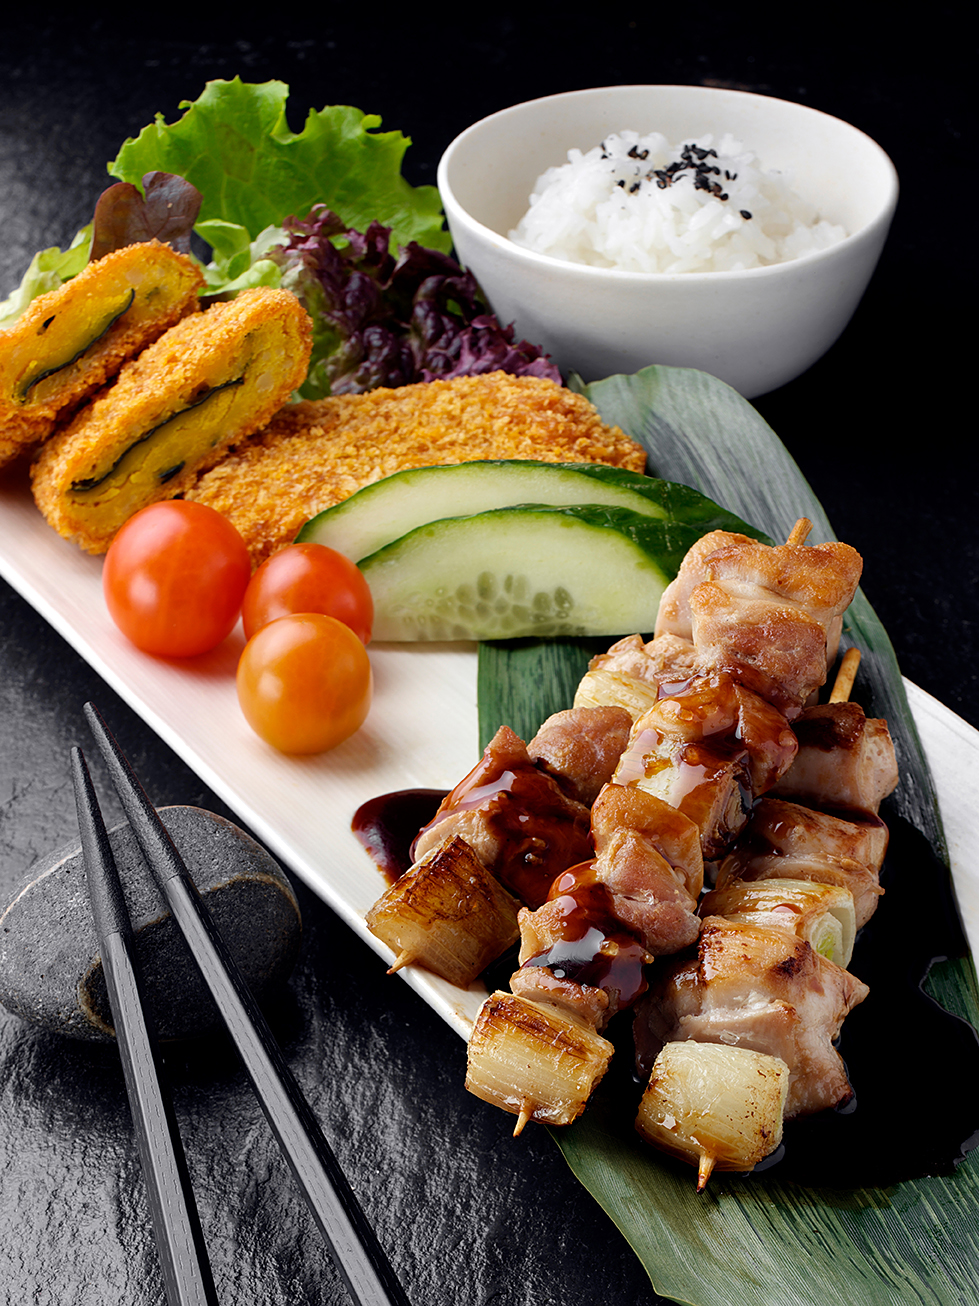 Japanese teriyaki chicken kebabs and rice